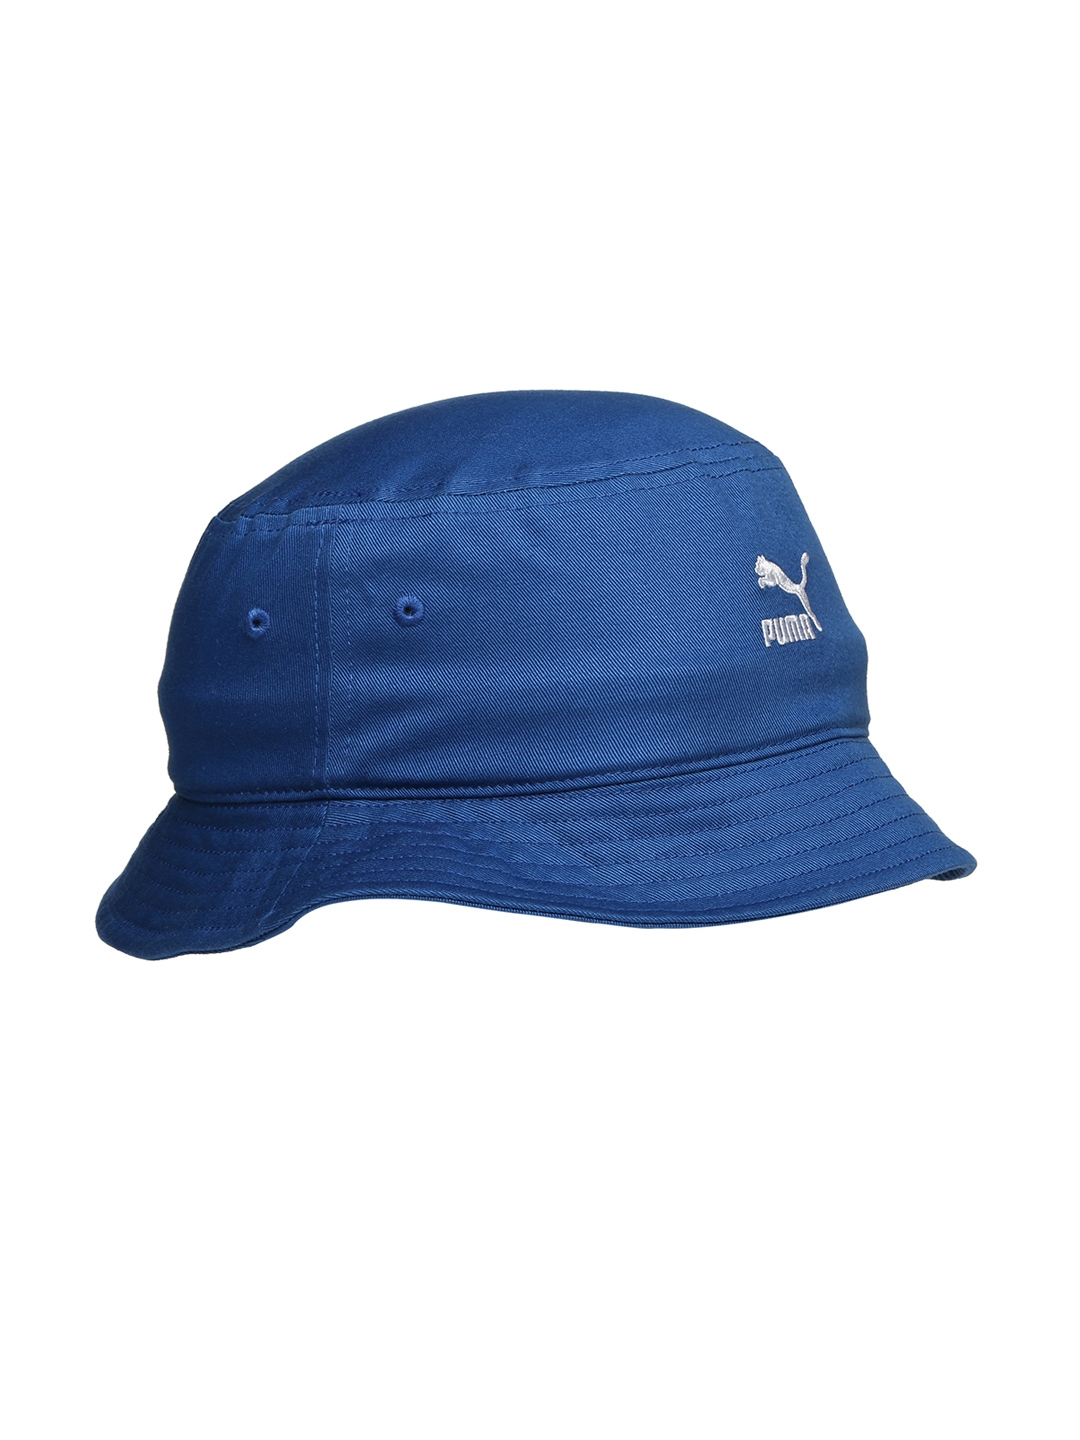 96fa377f9fd Buy Puma Unisex Blue Bucket Hat - Hat for Unisex 1919850